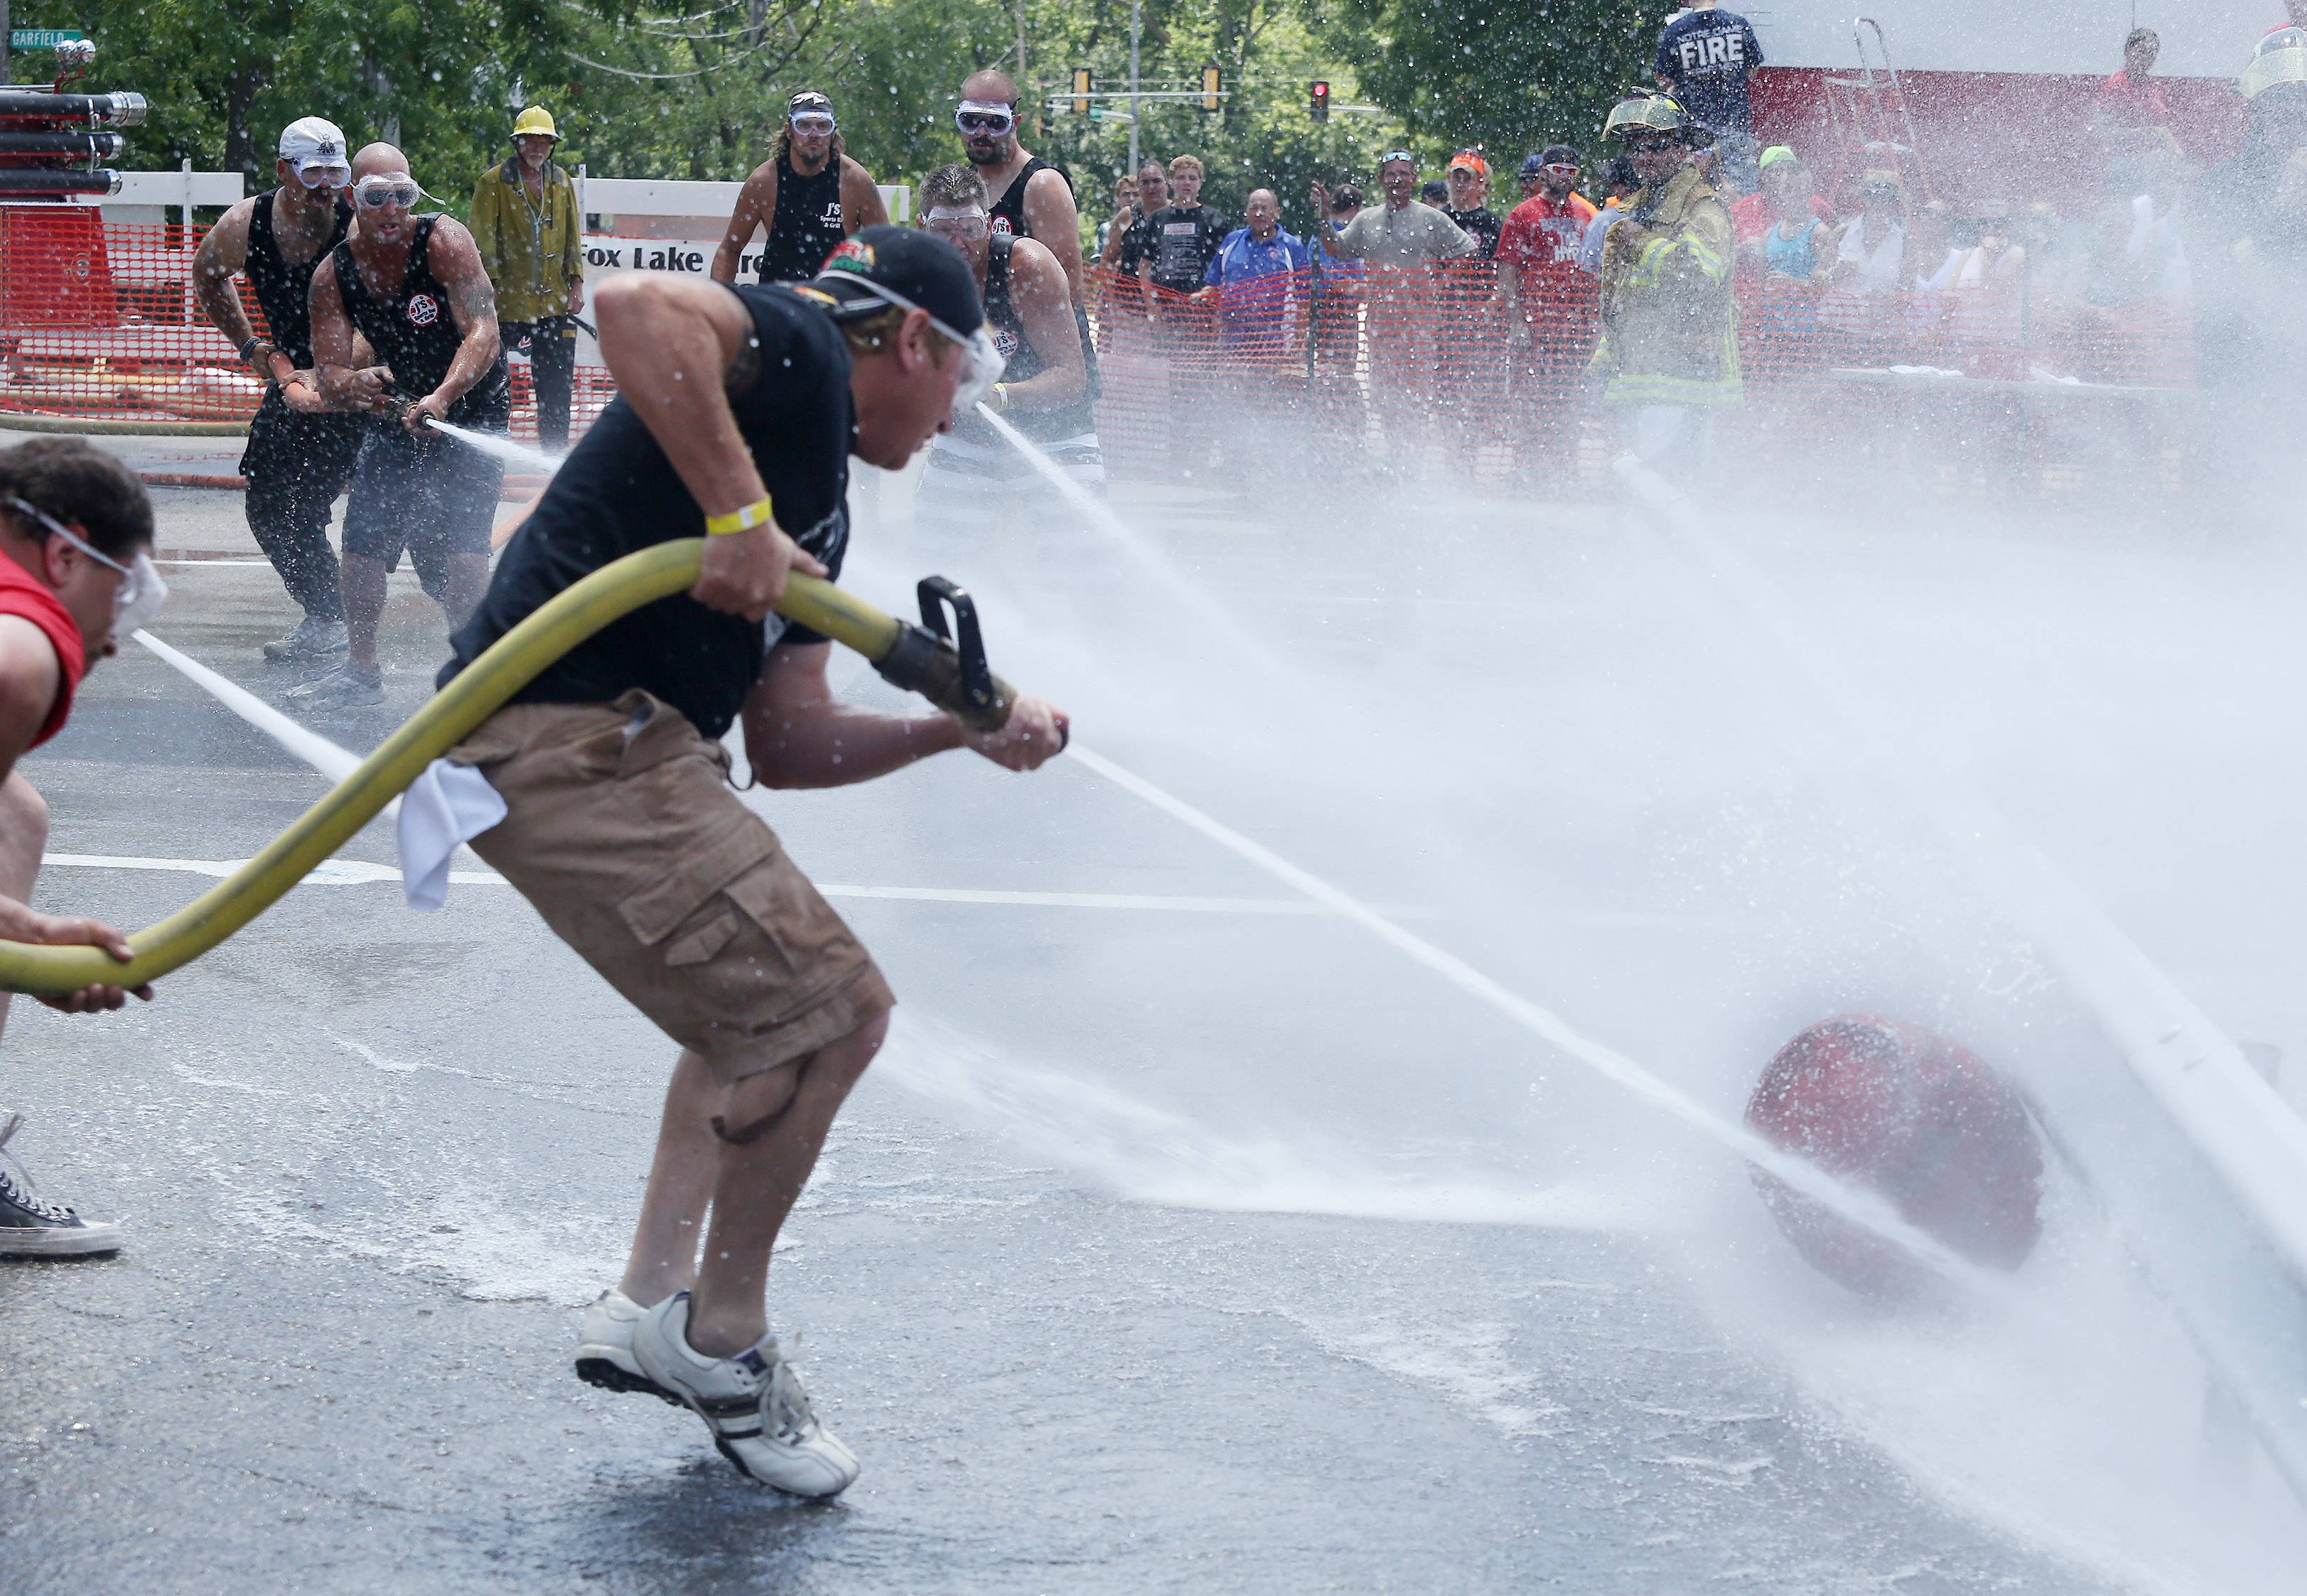 Eric Sutton, center, of Bingo Bunnies tries to keep the keg from coming at him as J's Sports Bar advances during the water fights Sunday at the Fox Lake Firemen's Fest. Teams representing area businesses and other groups competed using high-powered water hoses to blast a keg across the opponent's line.